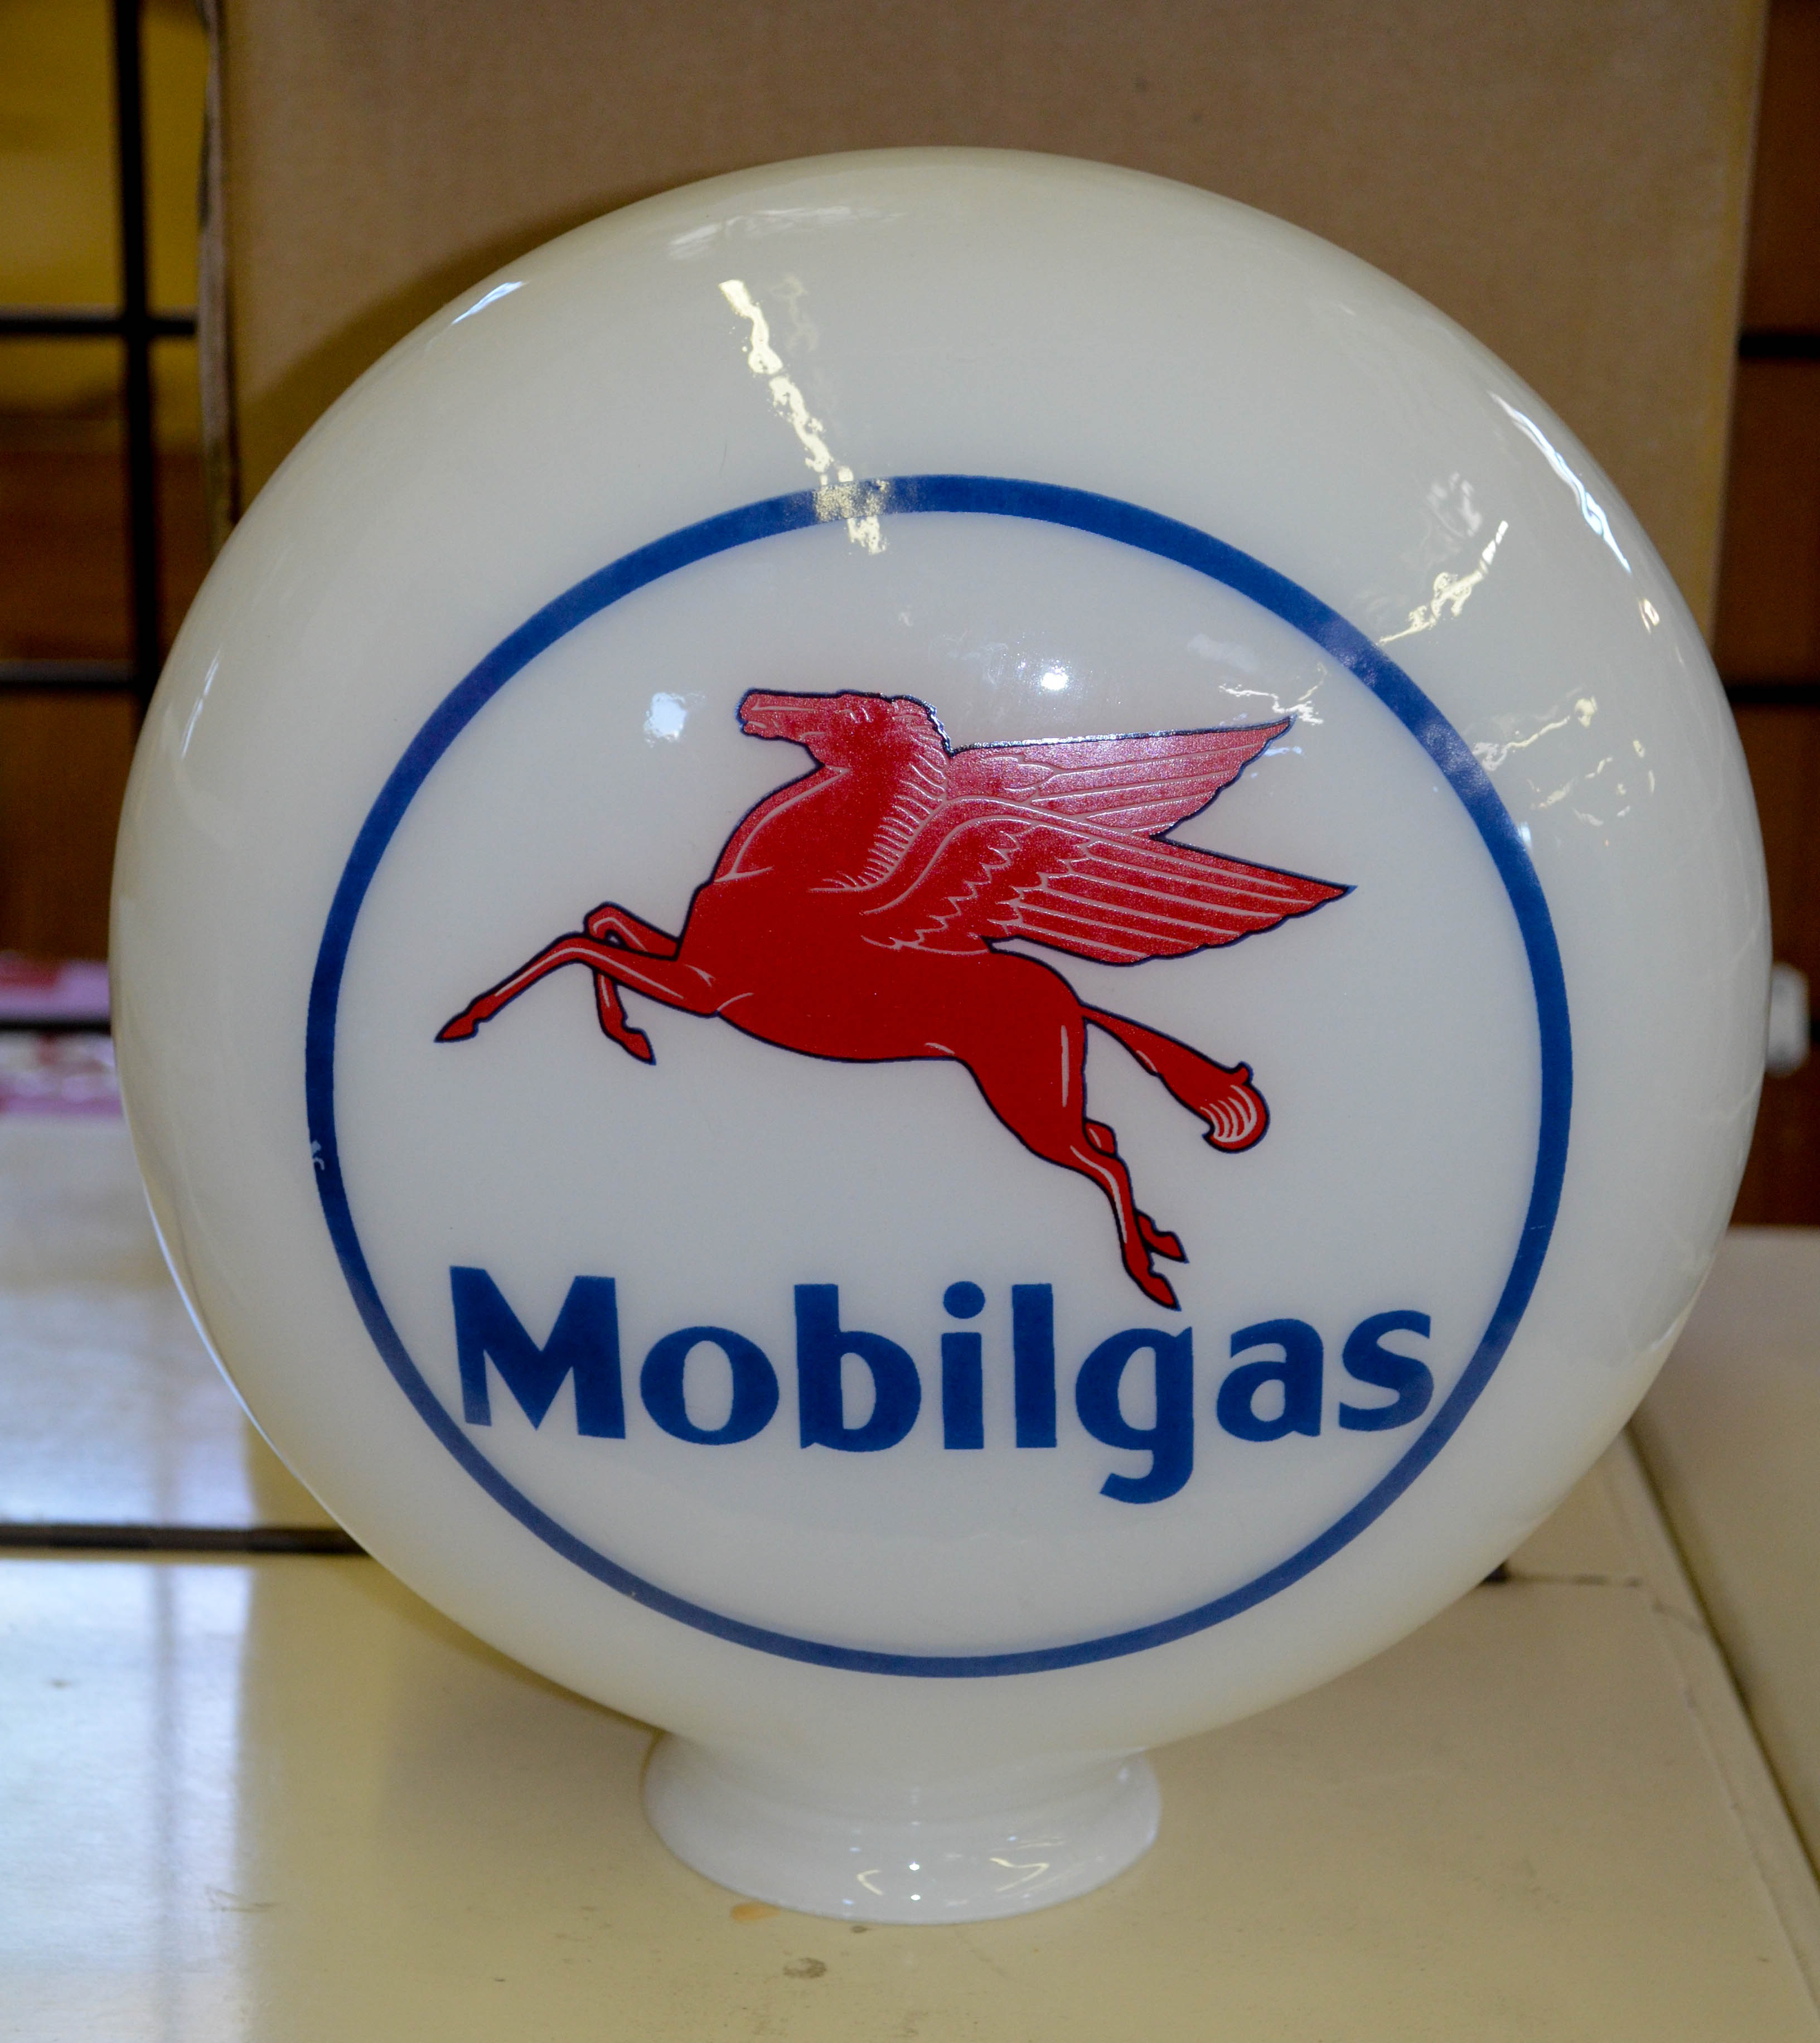 143 Mobilegas Light Cover